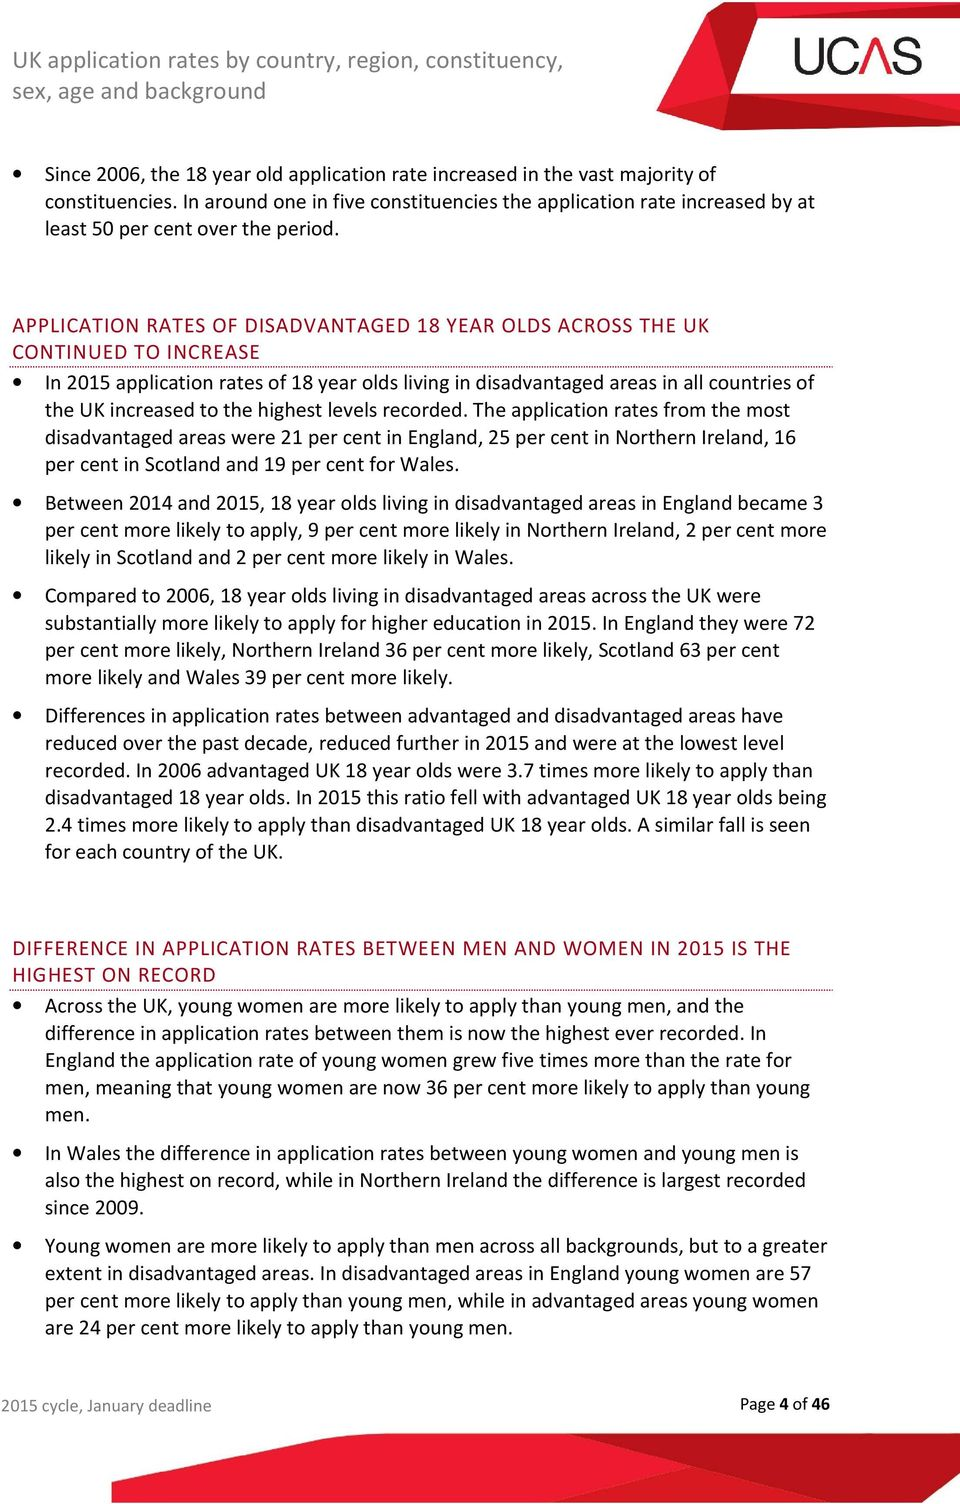 APPLICATION RATES OF DISADVANTAGED 18 YEAR OLDS ACROSS THE UK CONTINUED TO INCREASE In 2015 application rates of 18 year olds living in disadvantaged areas in all countries of the UK increased to the